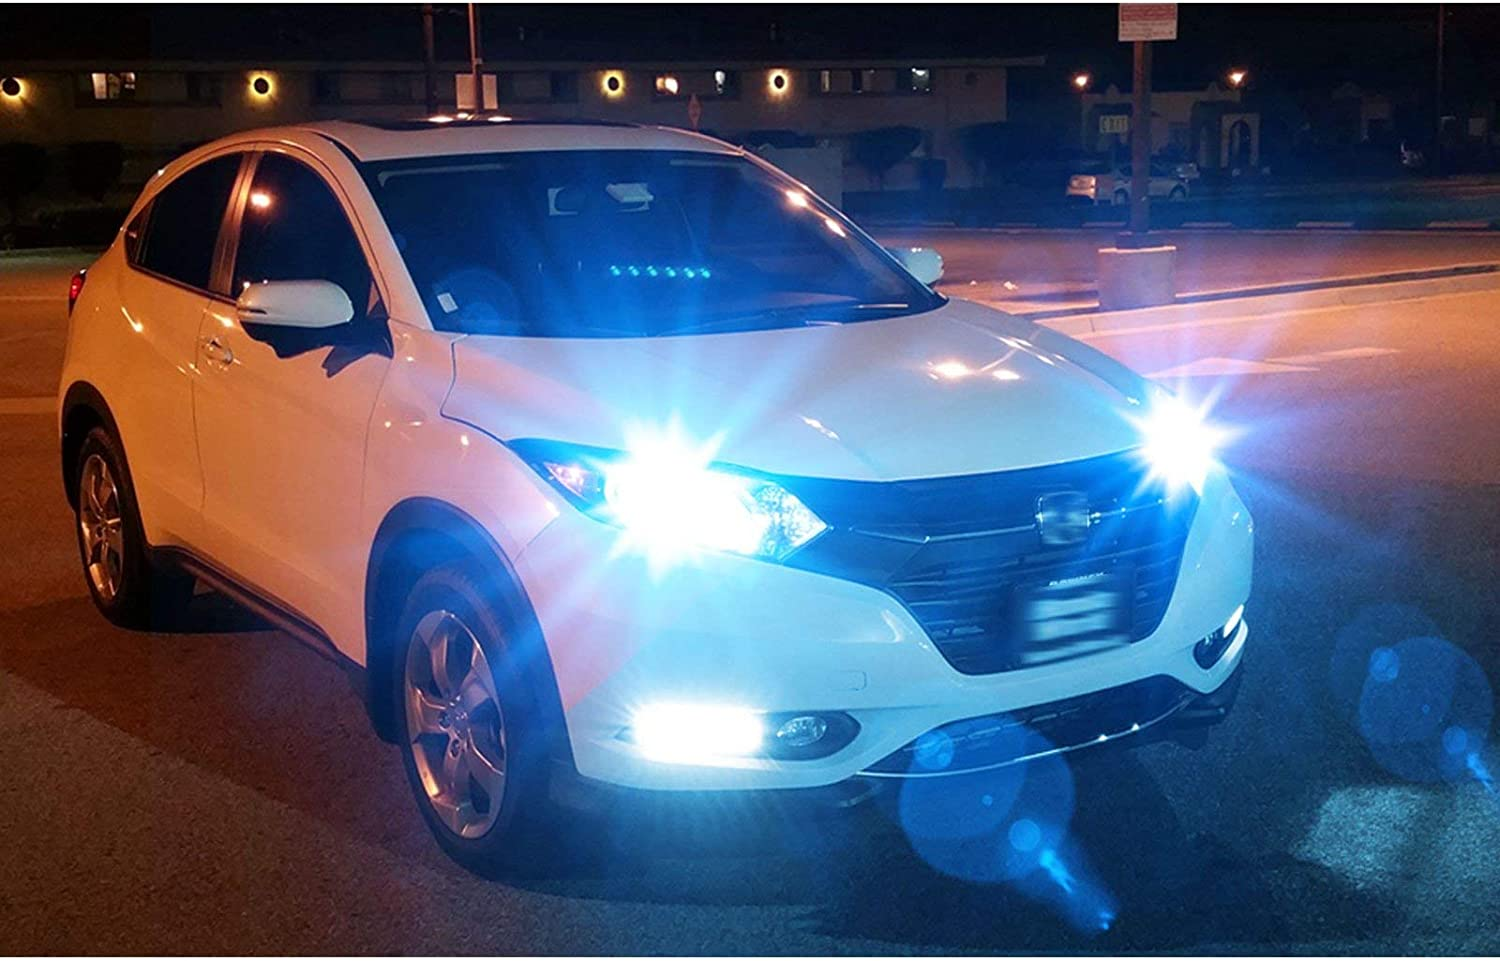 2800LM Super Bright High Power LED DRL Driving Lamp Replacement Xotic Tech H11 H8 H9 LED Fog Light Bulb Ice Blue